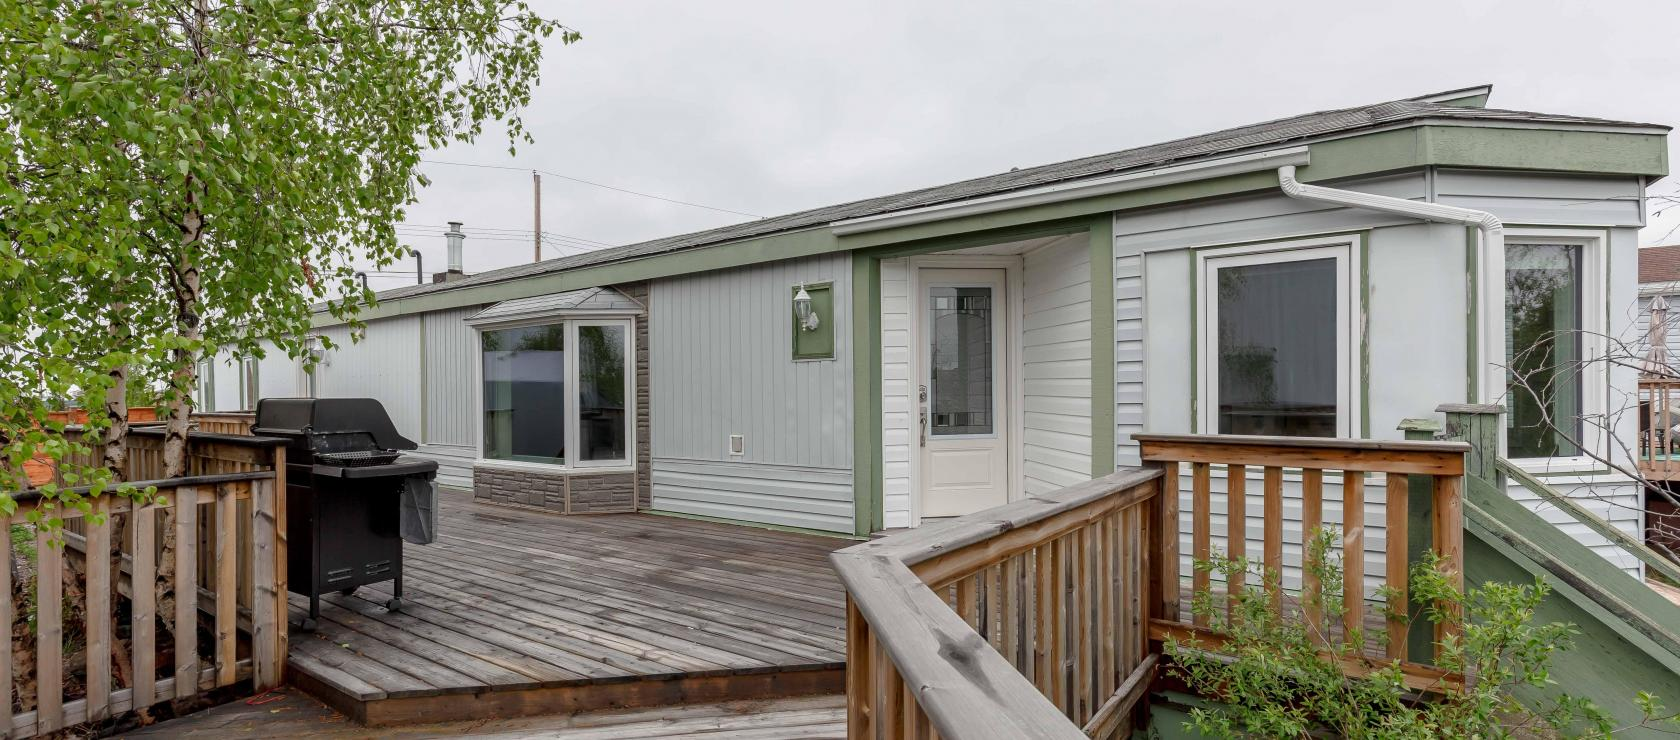 65 Mandeville Drive, Frame Lake, Yellowknife 2